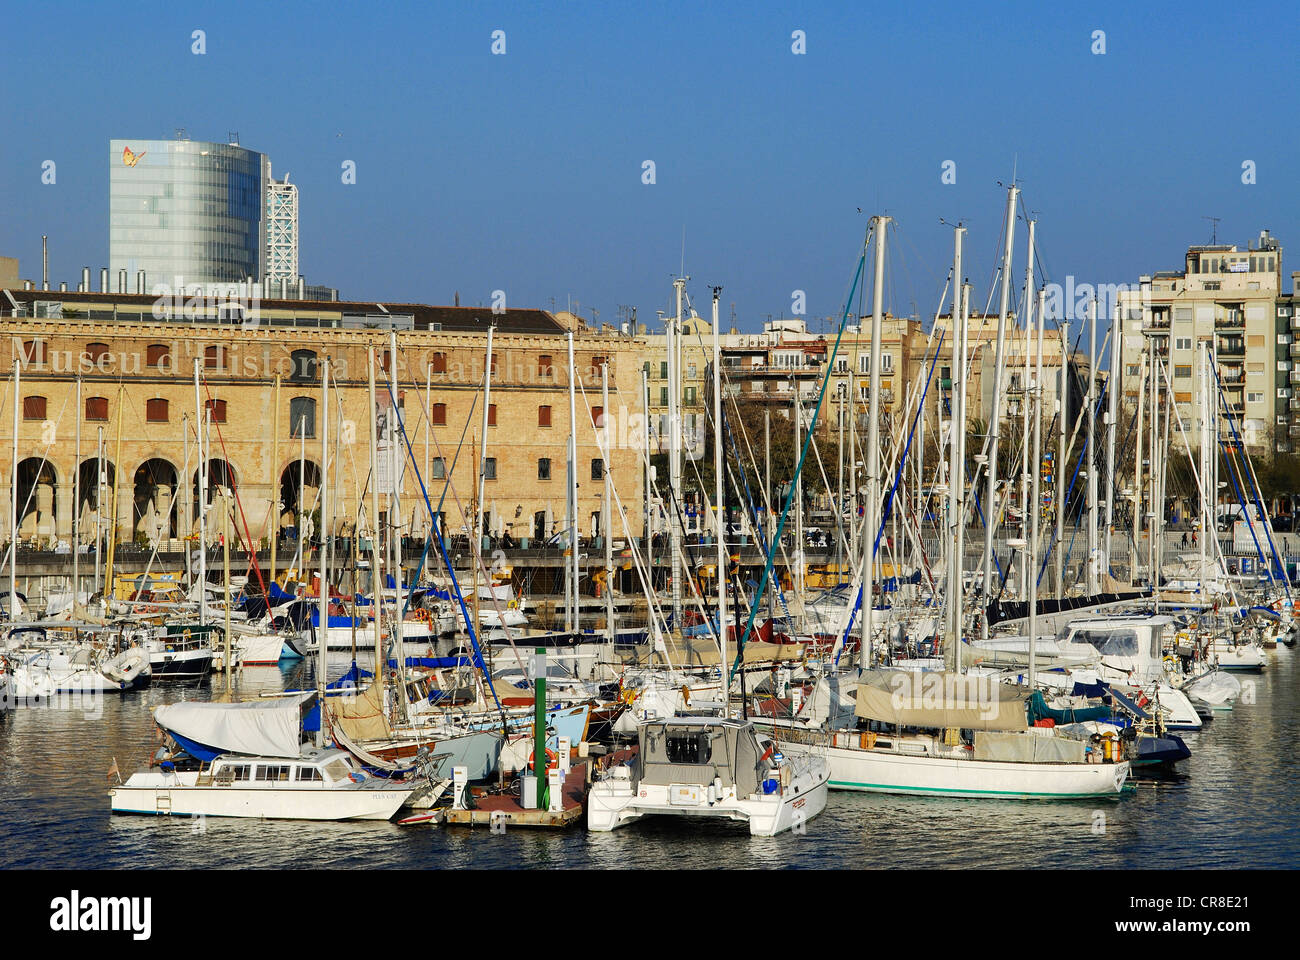 Spain, Catalonia, Barcelona, the Port Vell, the old harbour, with the Palau de Mar housing the museum of the History - Stock Image